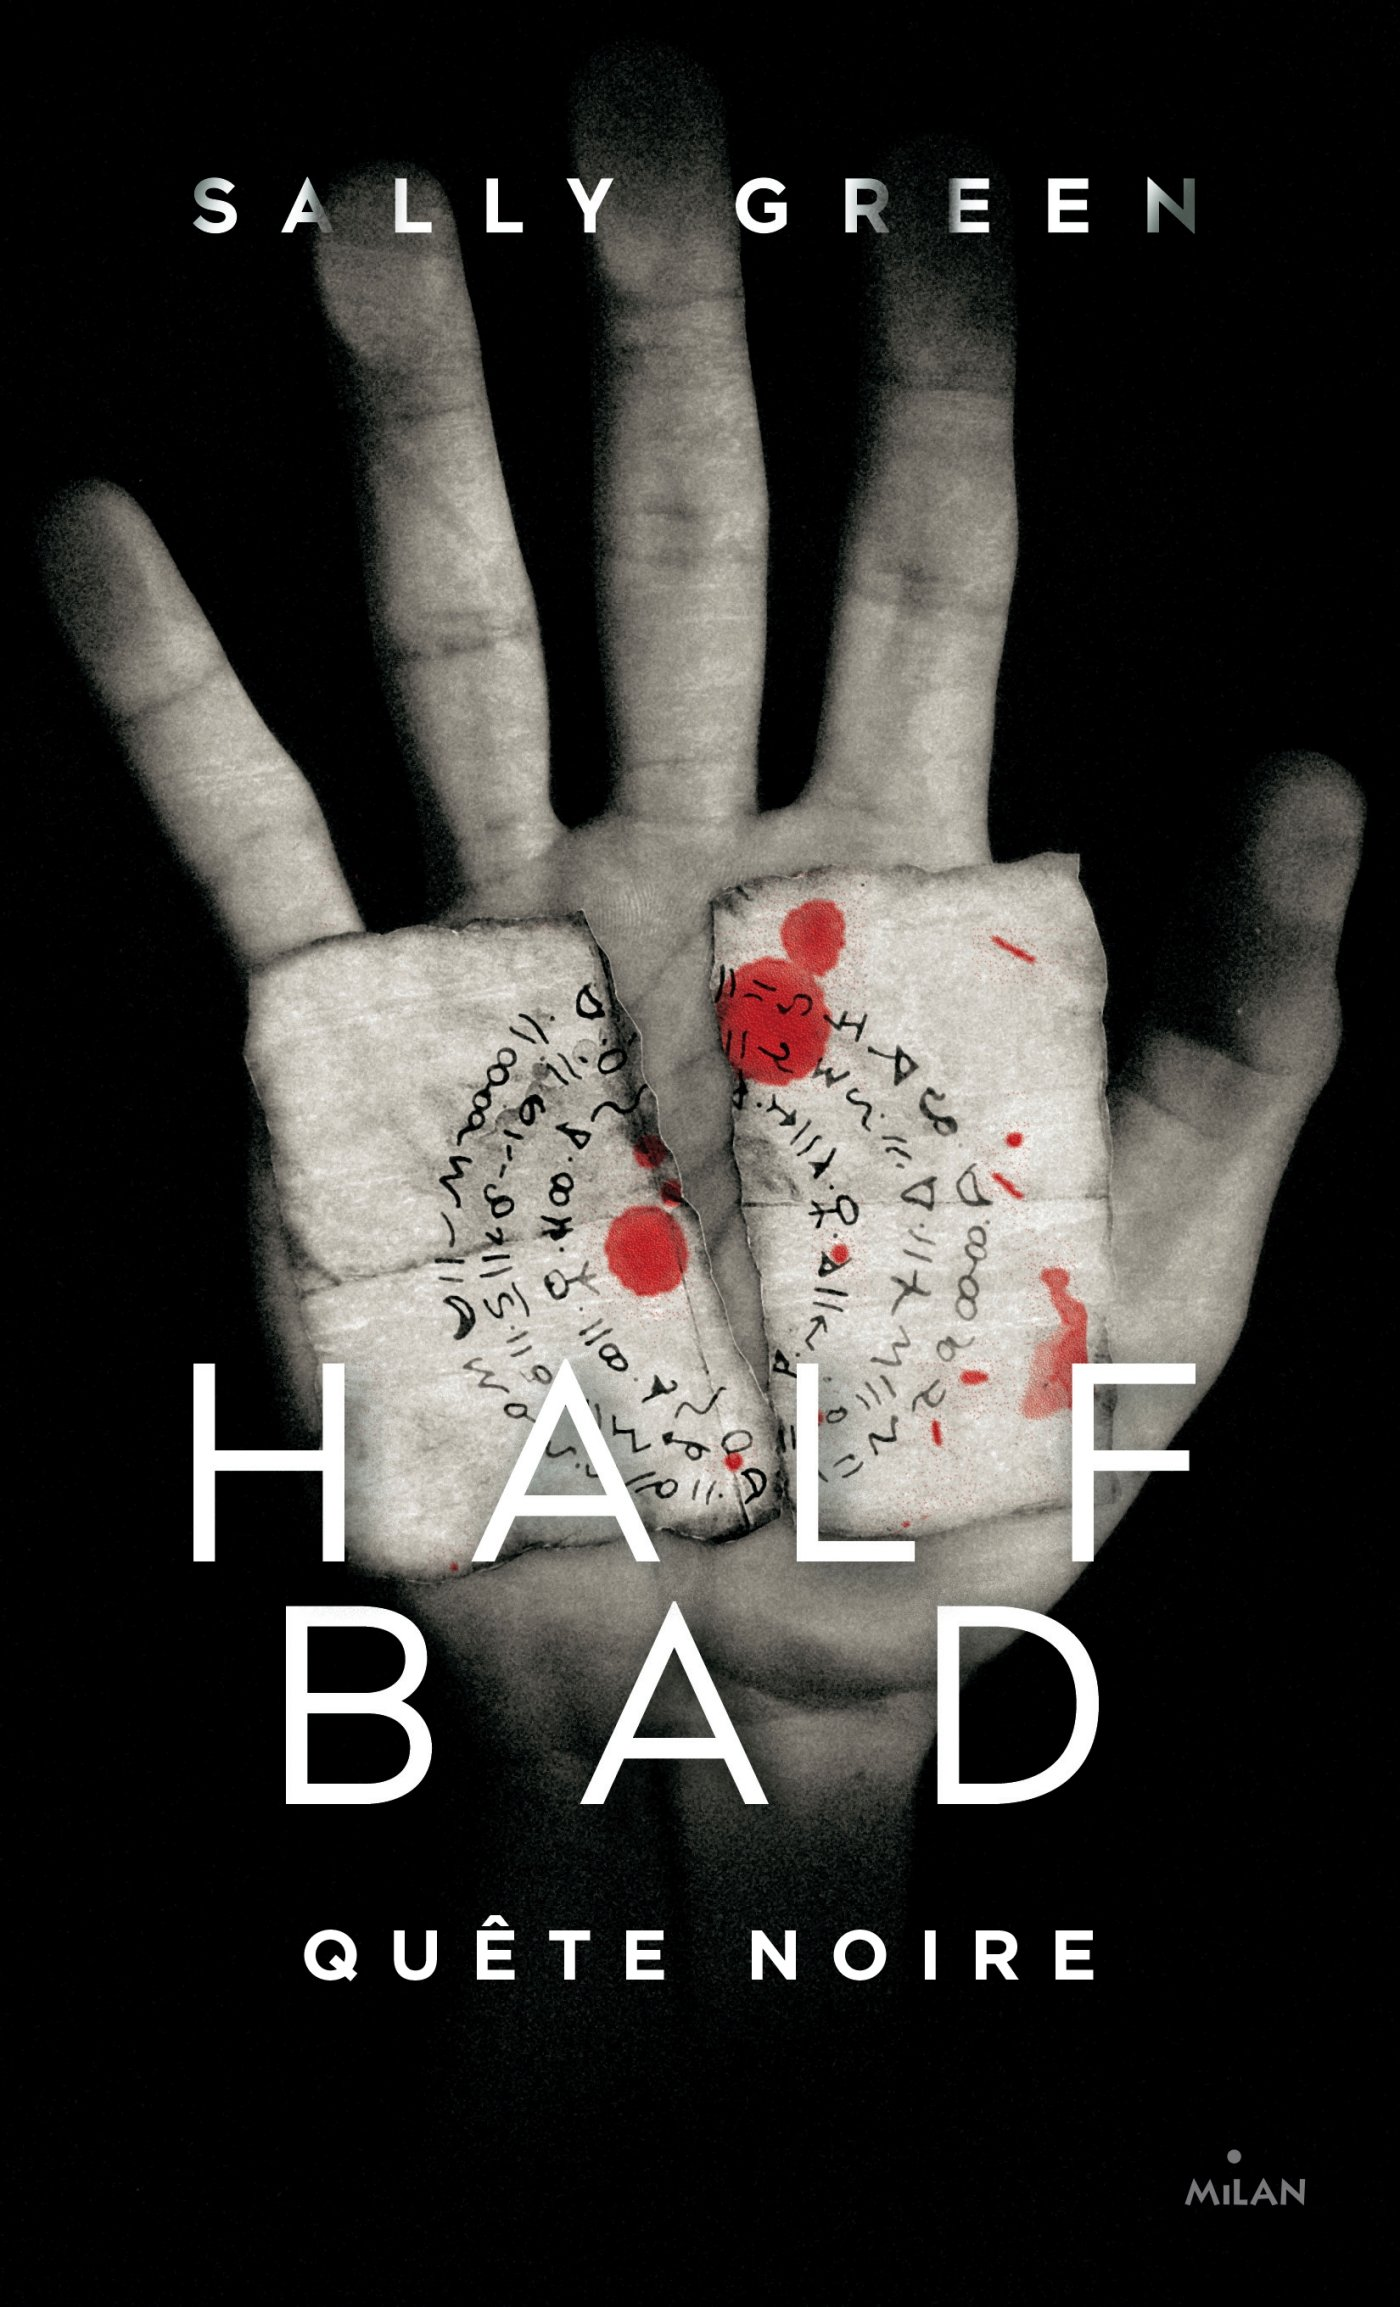 Couverture : Green Sally, Half Bad, Milan